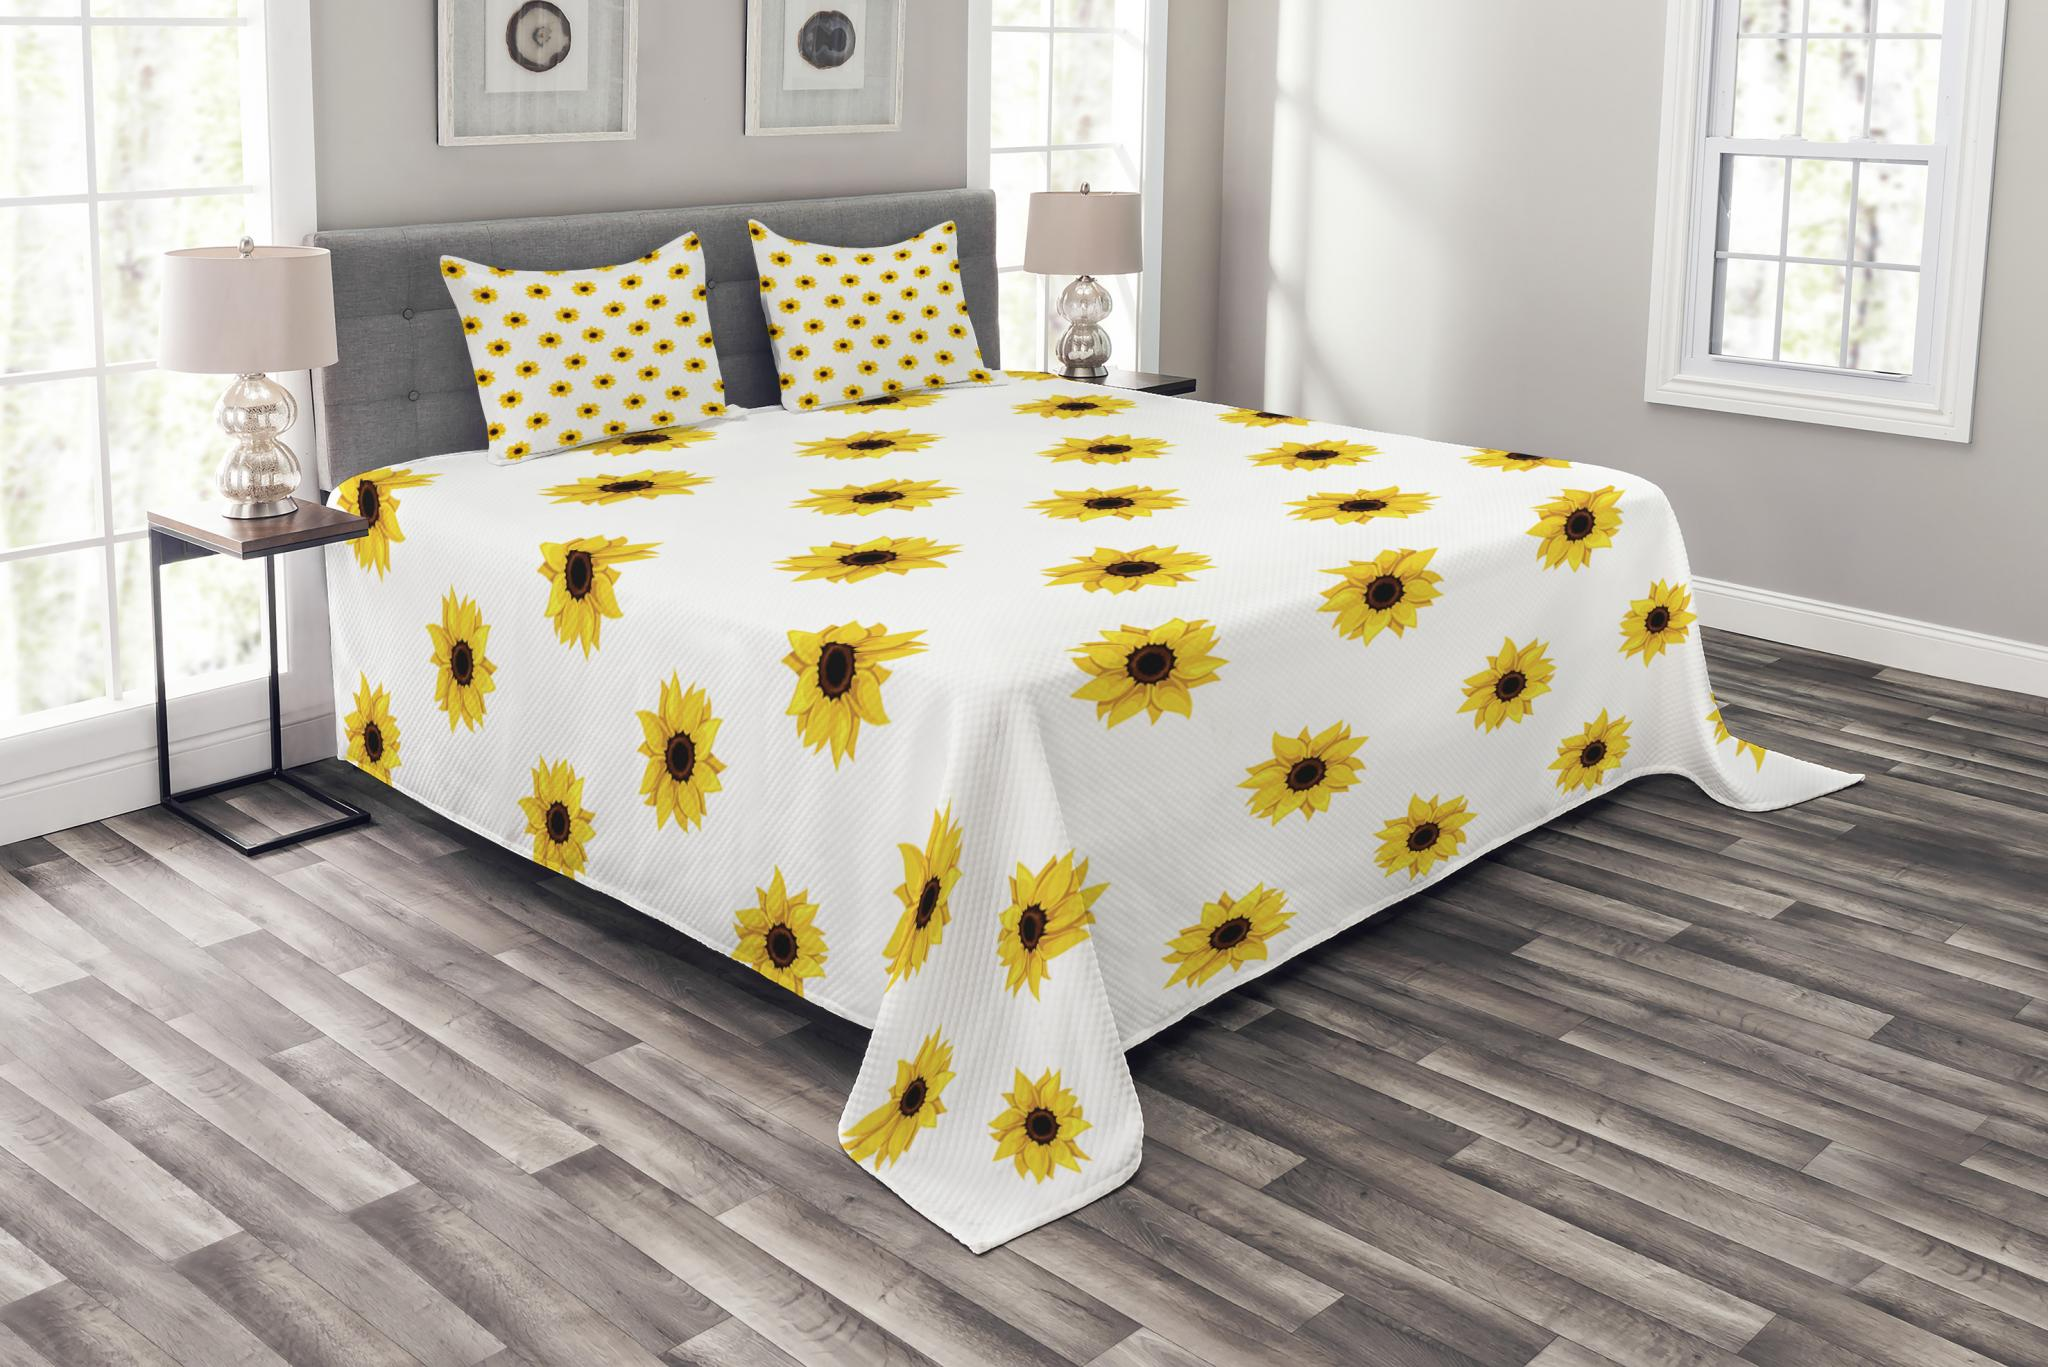 sunflower bedspread set sunflower pattern on a white background vibrant nature elements simple seasonal art decorative quilted coverlet set with